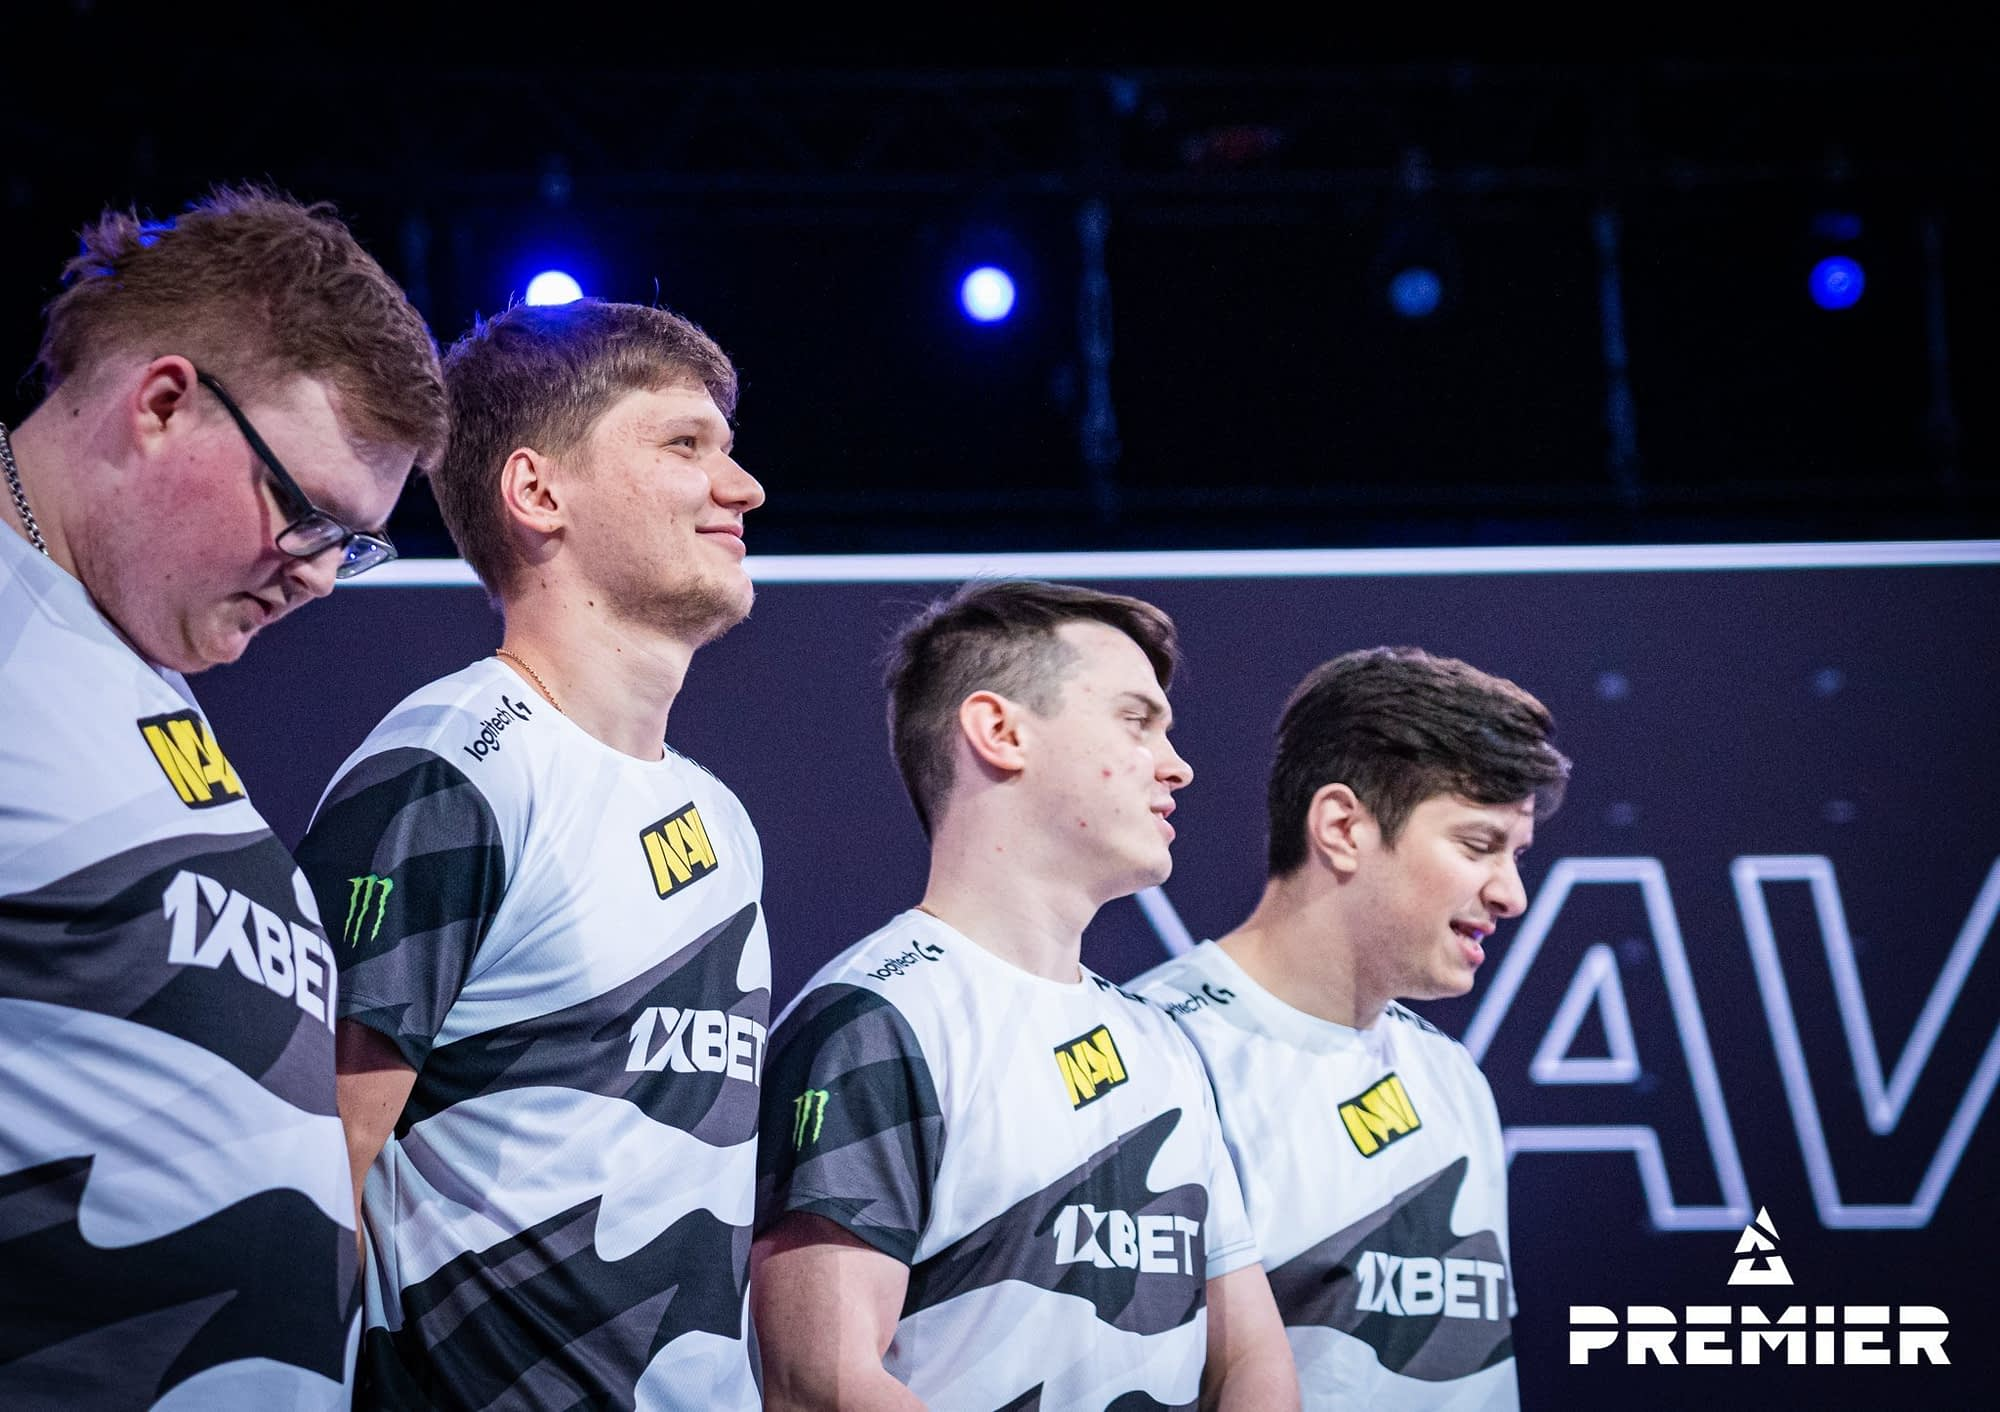 BLAST Premier Spring Series Group B: NaVi defeats Vitality and advances to the finals